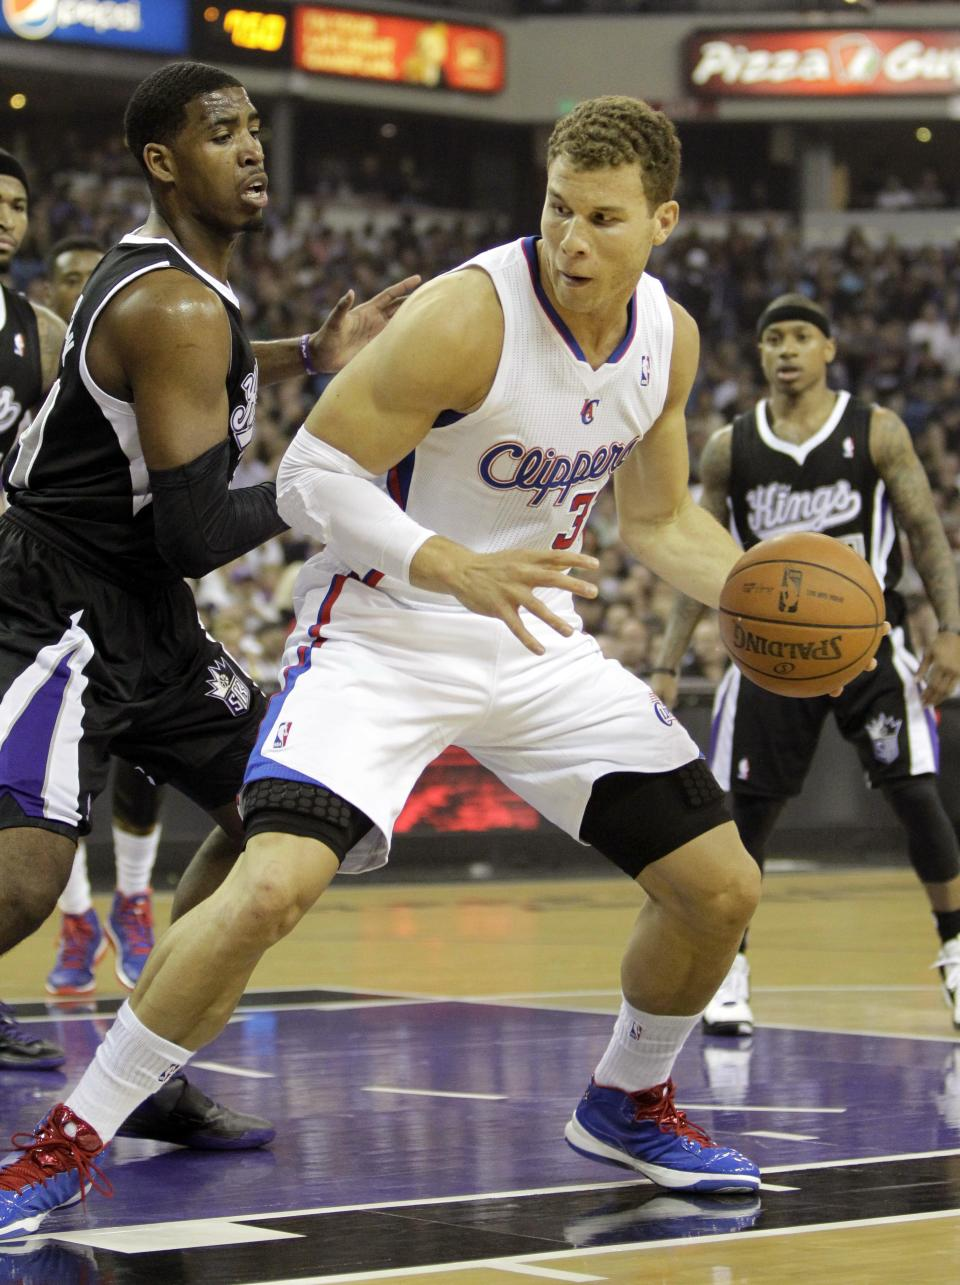 Los Angeles Clippers forward Blake Griffin, right, drives against Sacramento Kings forward Jason Thompson during the first quarter of an NBA basketball game in Sacramento, Calif., Wednesday, April 17, 2013. (AP Photo/Rich Pedroncelli)